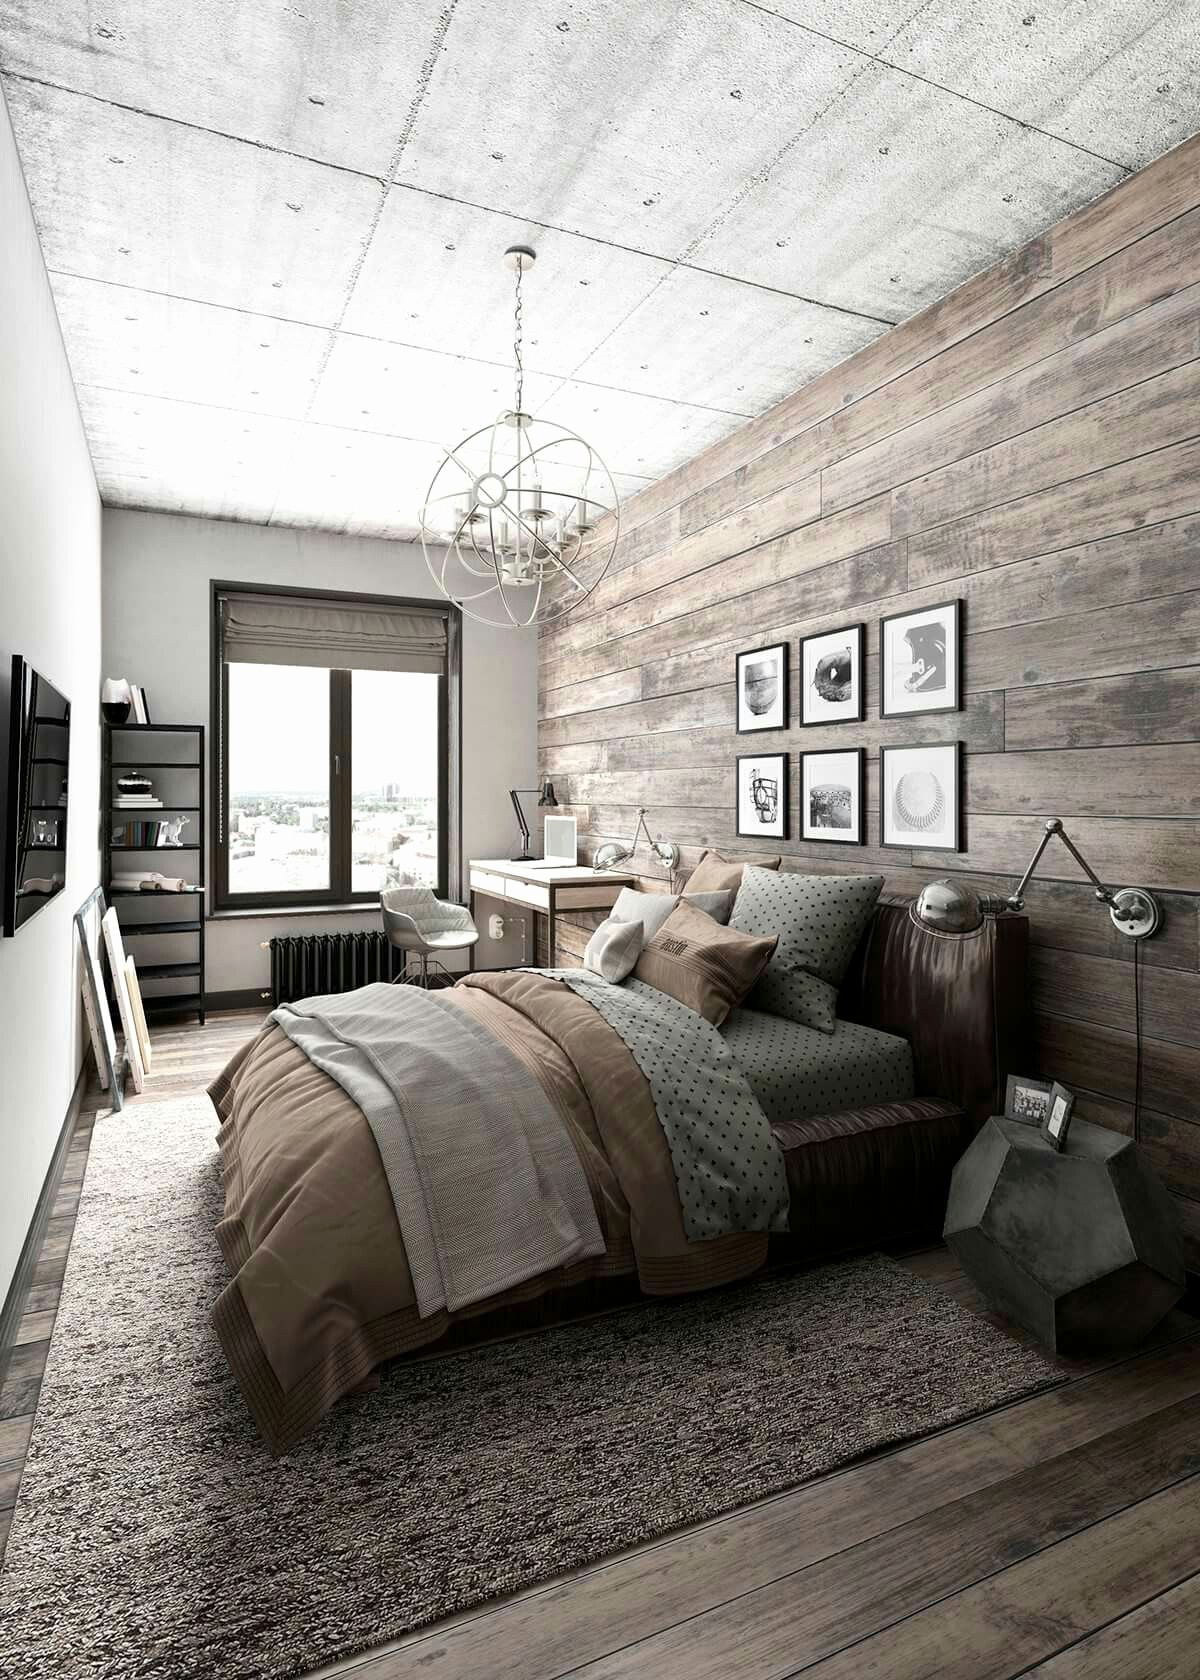 industrial bedroom industrial bedroom Decorate Your Industrial Bedroom With A Pendant Lighting Piece! Decorate Your Industrial Bedroom With A Pendant Lighting Piece 1